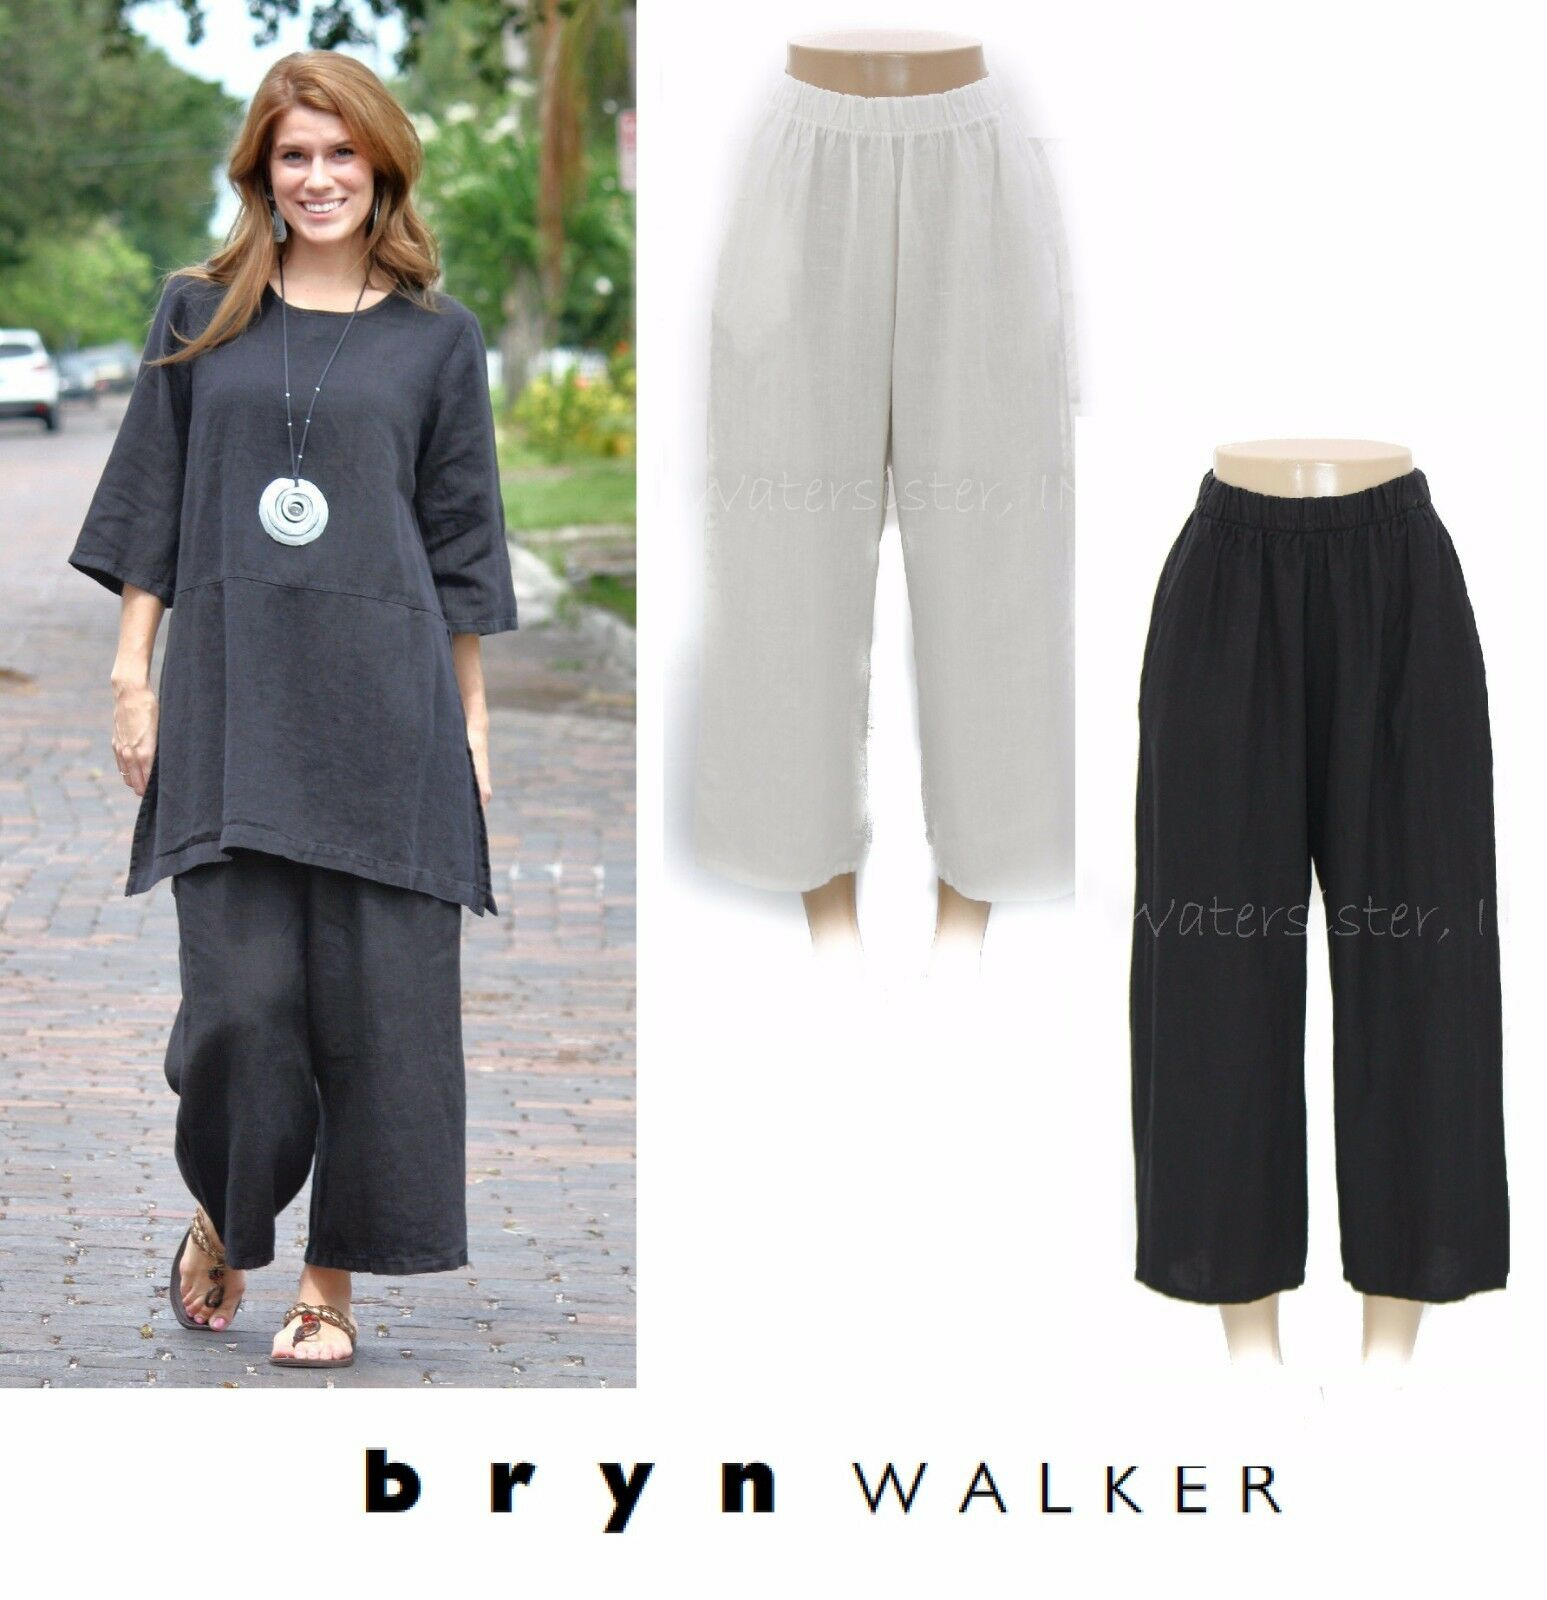 BRYN WALKER Heavy Linen  FLOOD PANT  Wide Crop Pocket Pants X S M L XL FALL 2017